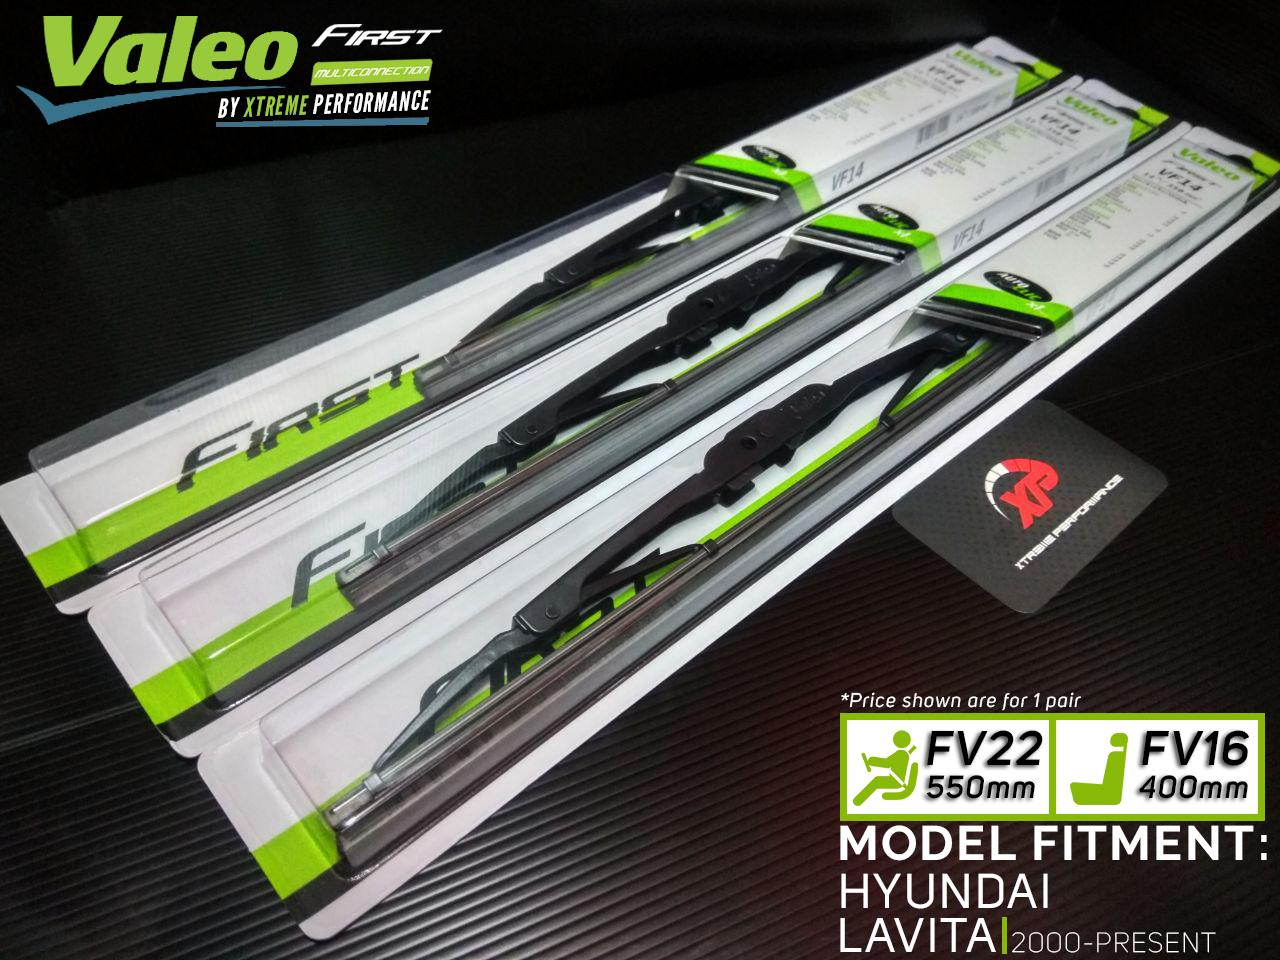 Valeo First Windshield Wiper Blades For HYUNDAI LAVITA (2000-PRESENT)